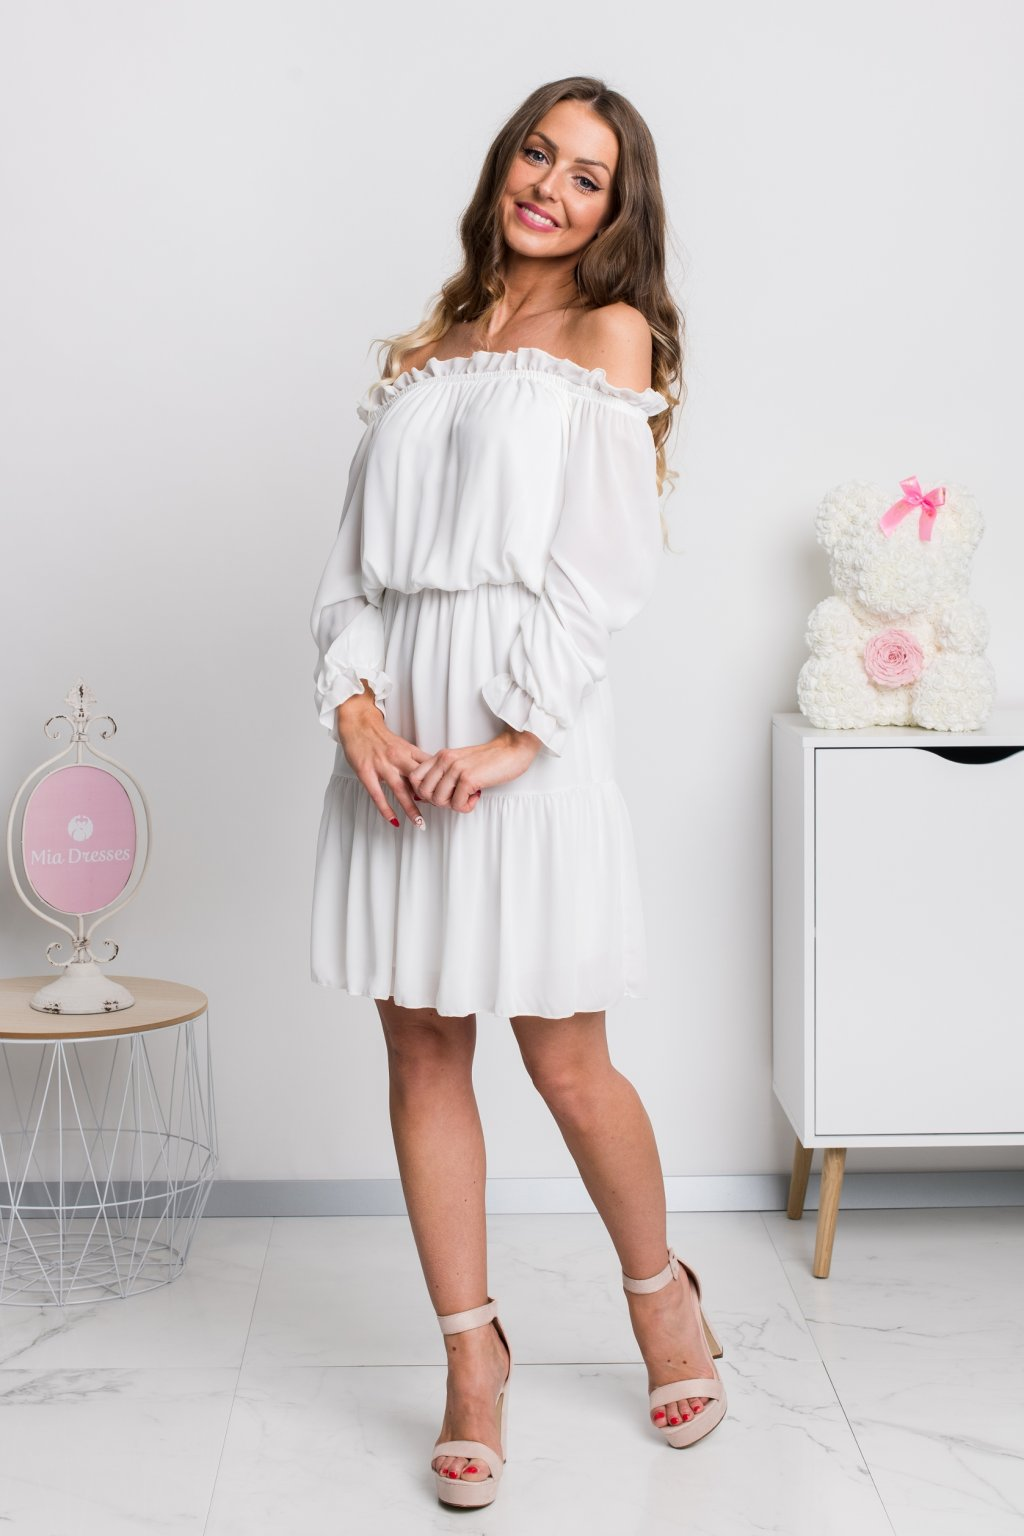 White short off-the-shoulder dress